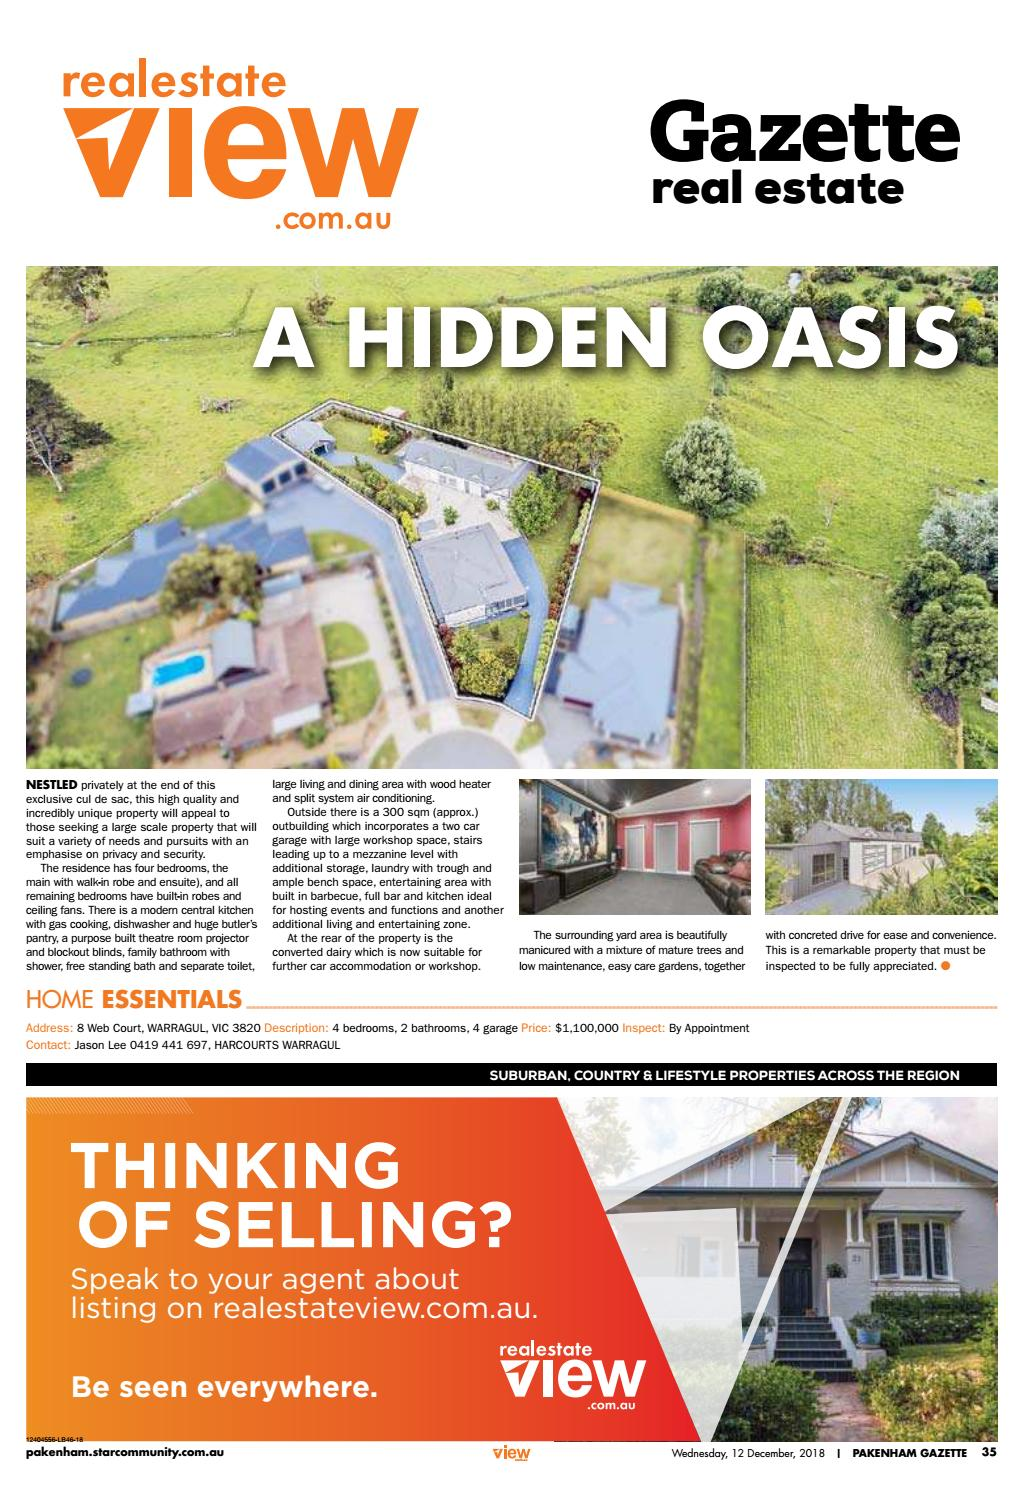 Pakenham Storage Real Estate Pakenham Gazette 12th December 2018 By Star News